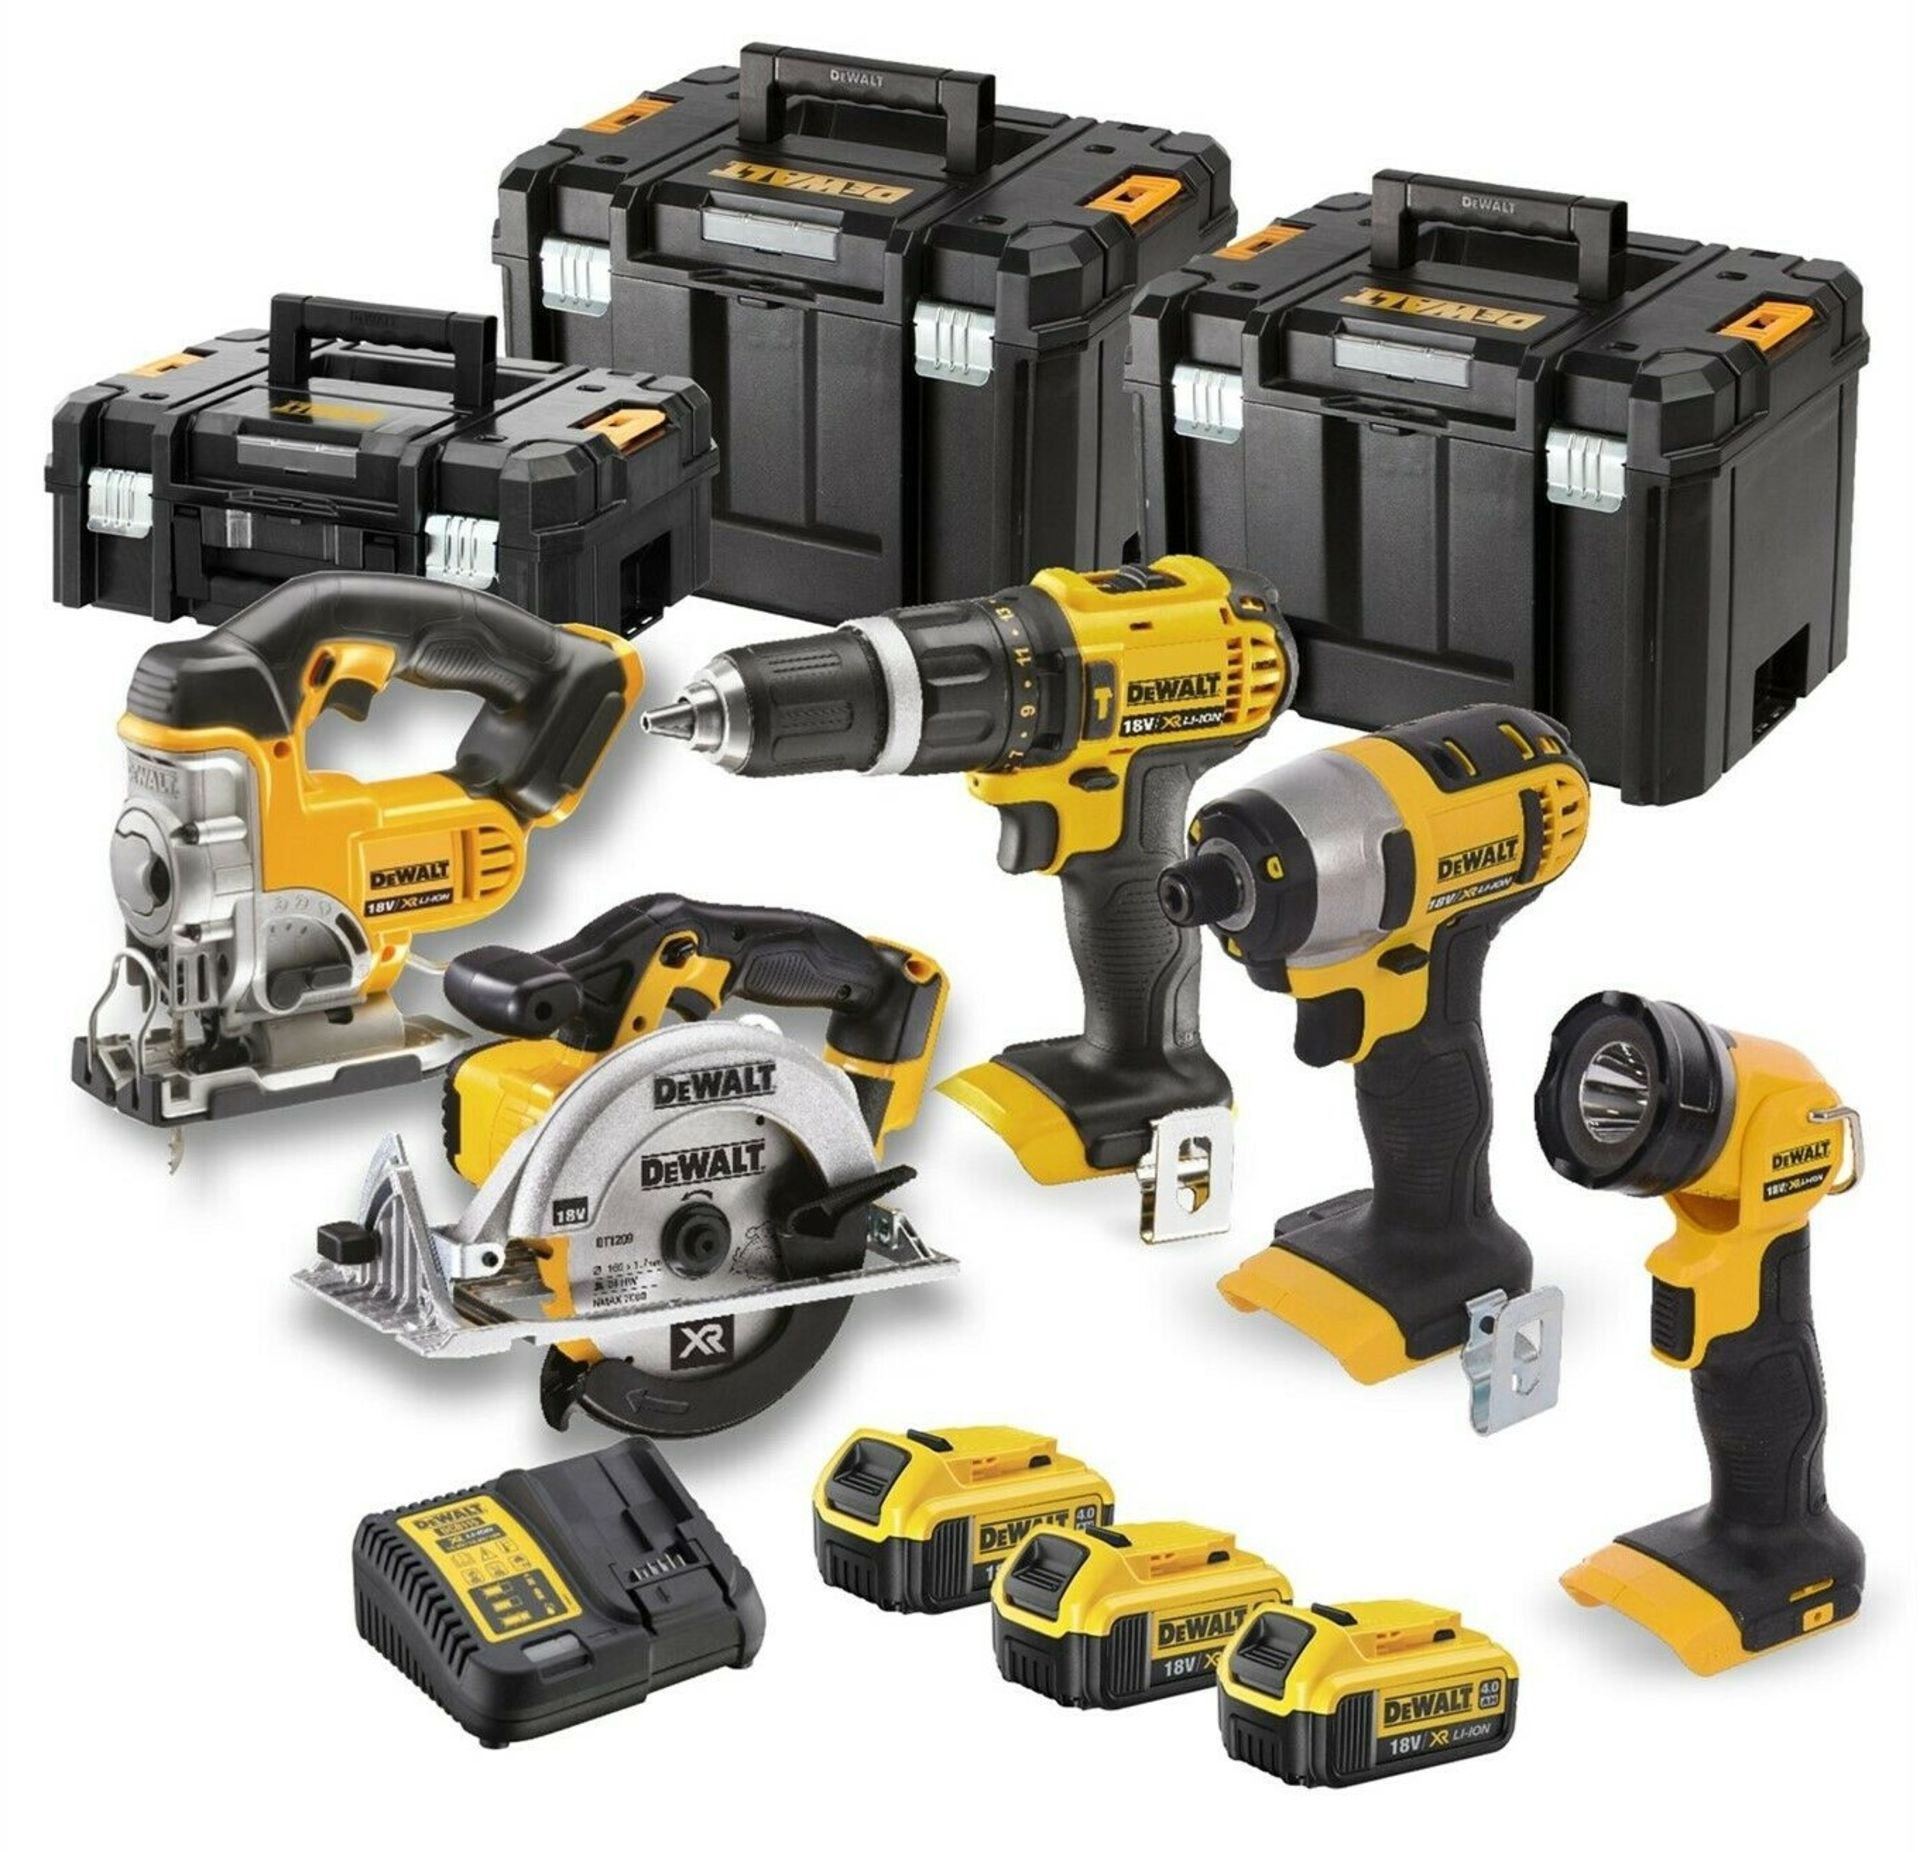 Lot 17012 - V Brand New DeWalt 18v 5 Piece Set Inc 3x 5.0Ah Batteries - Kit Includes Impact Driver + Combi Drill